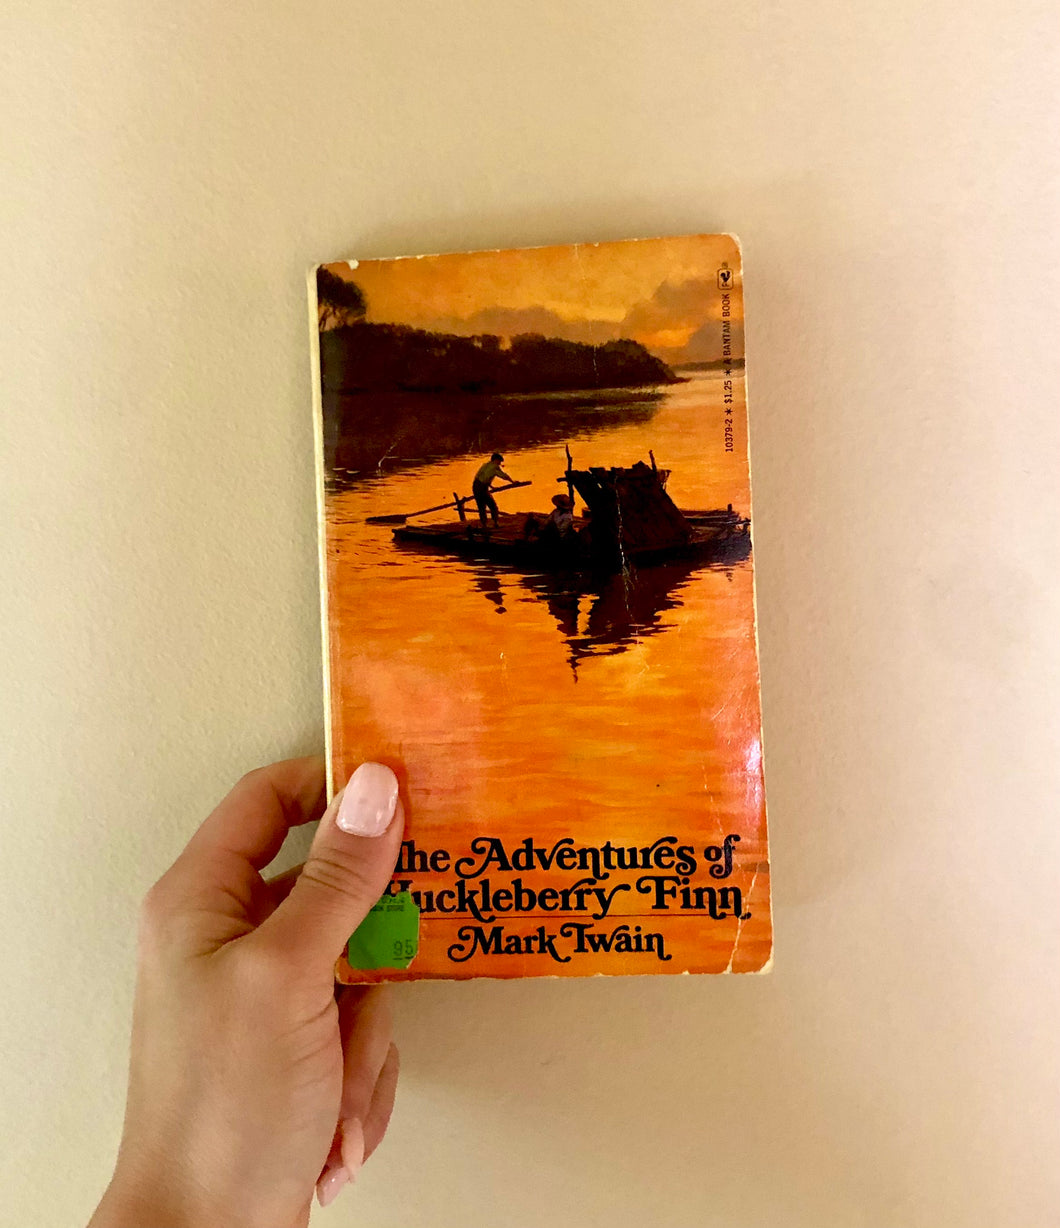 The Adventures of Huckleberry Fin by Mark Twain